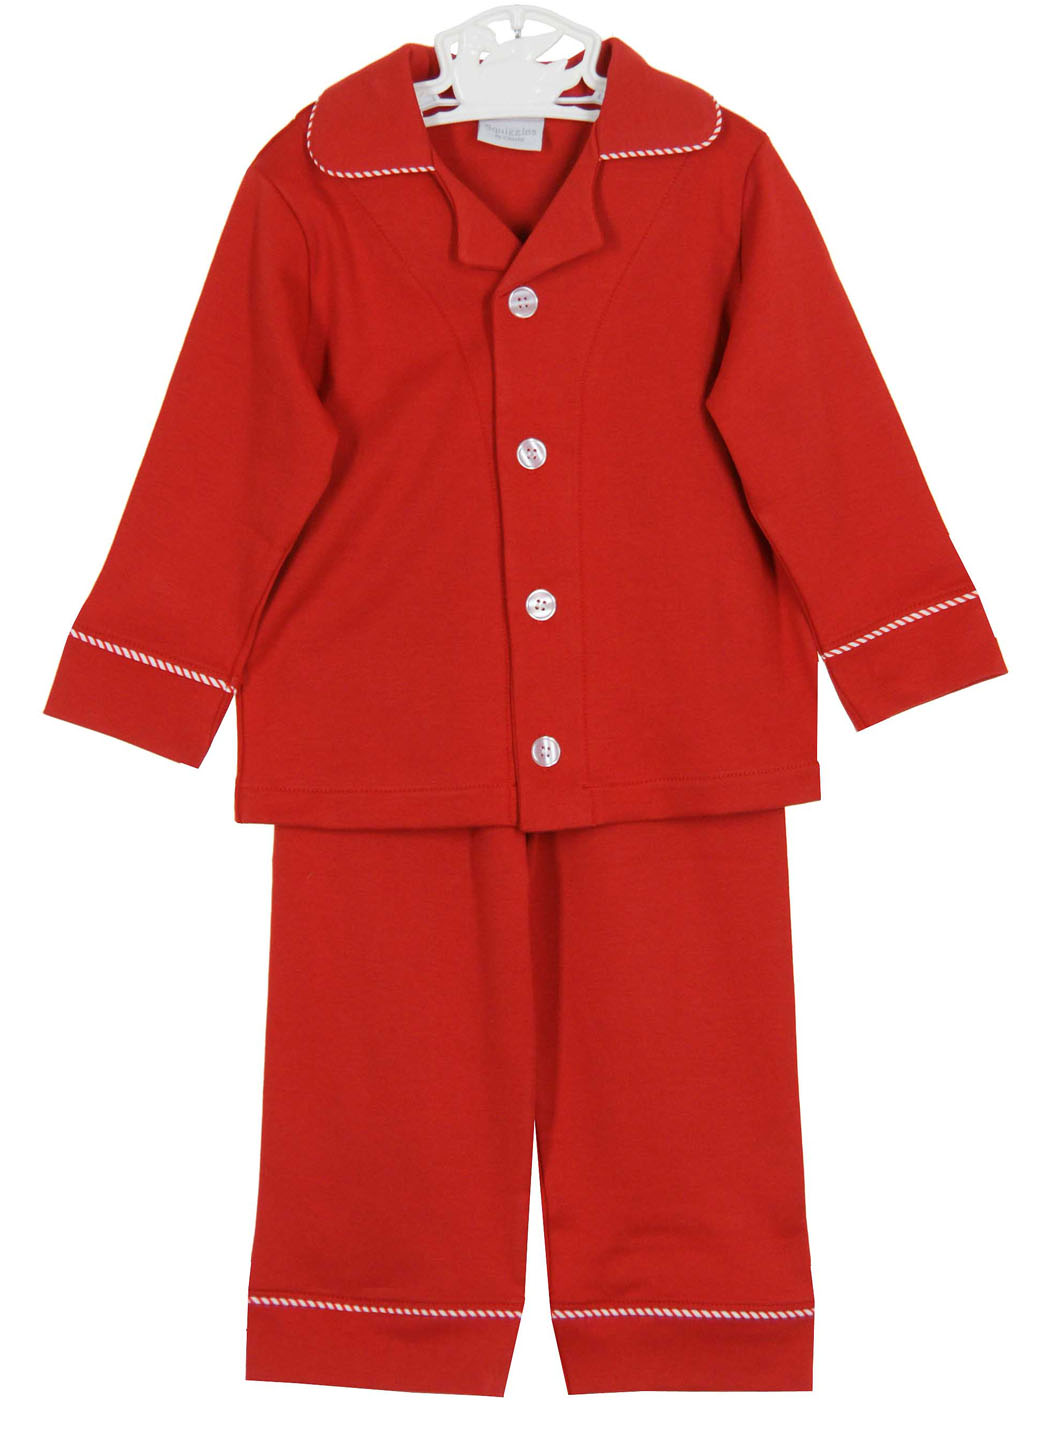 Toddler Christmas Pjs